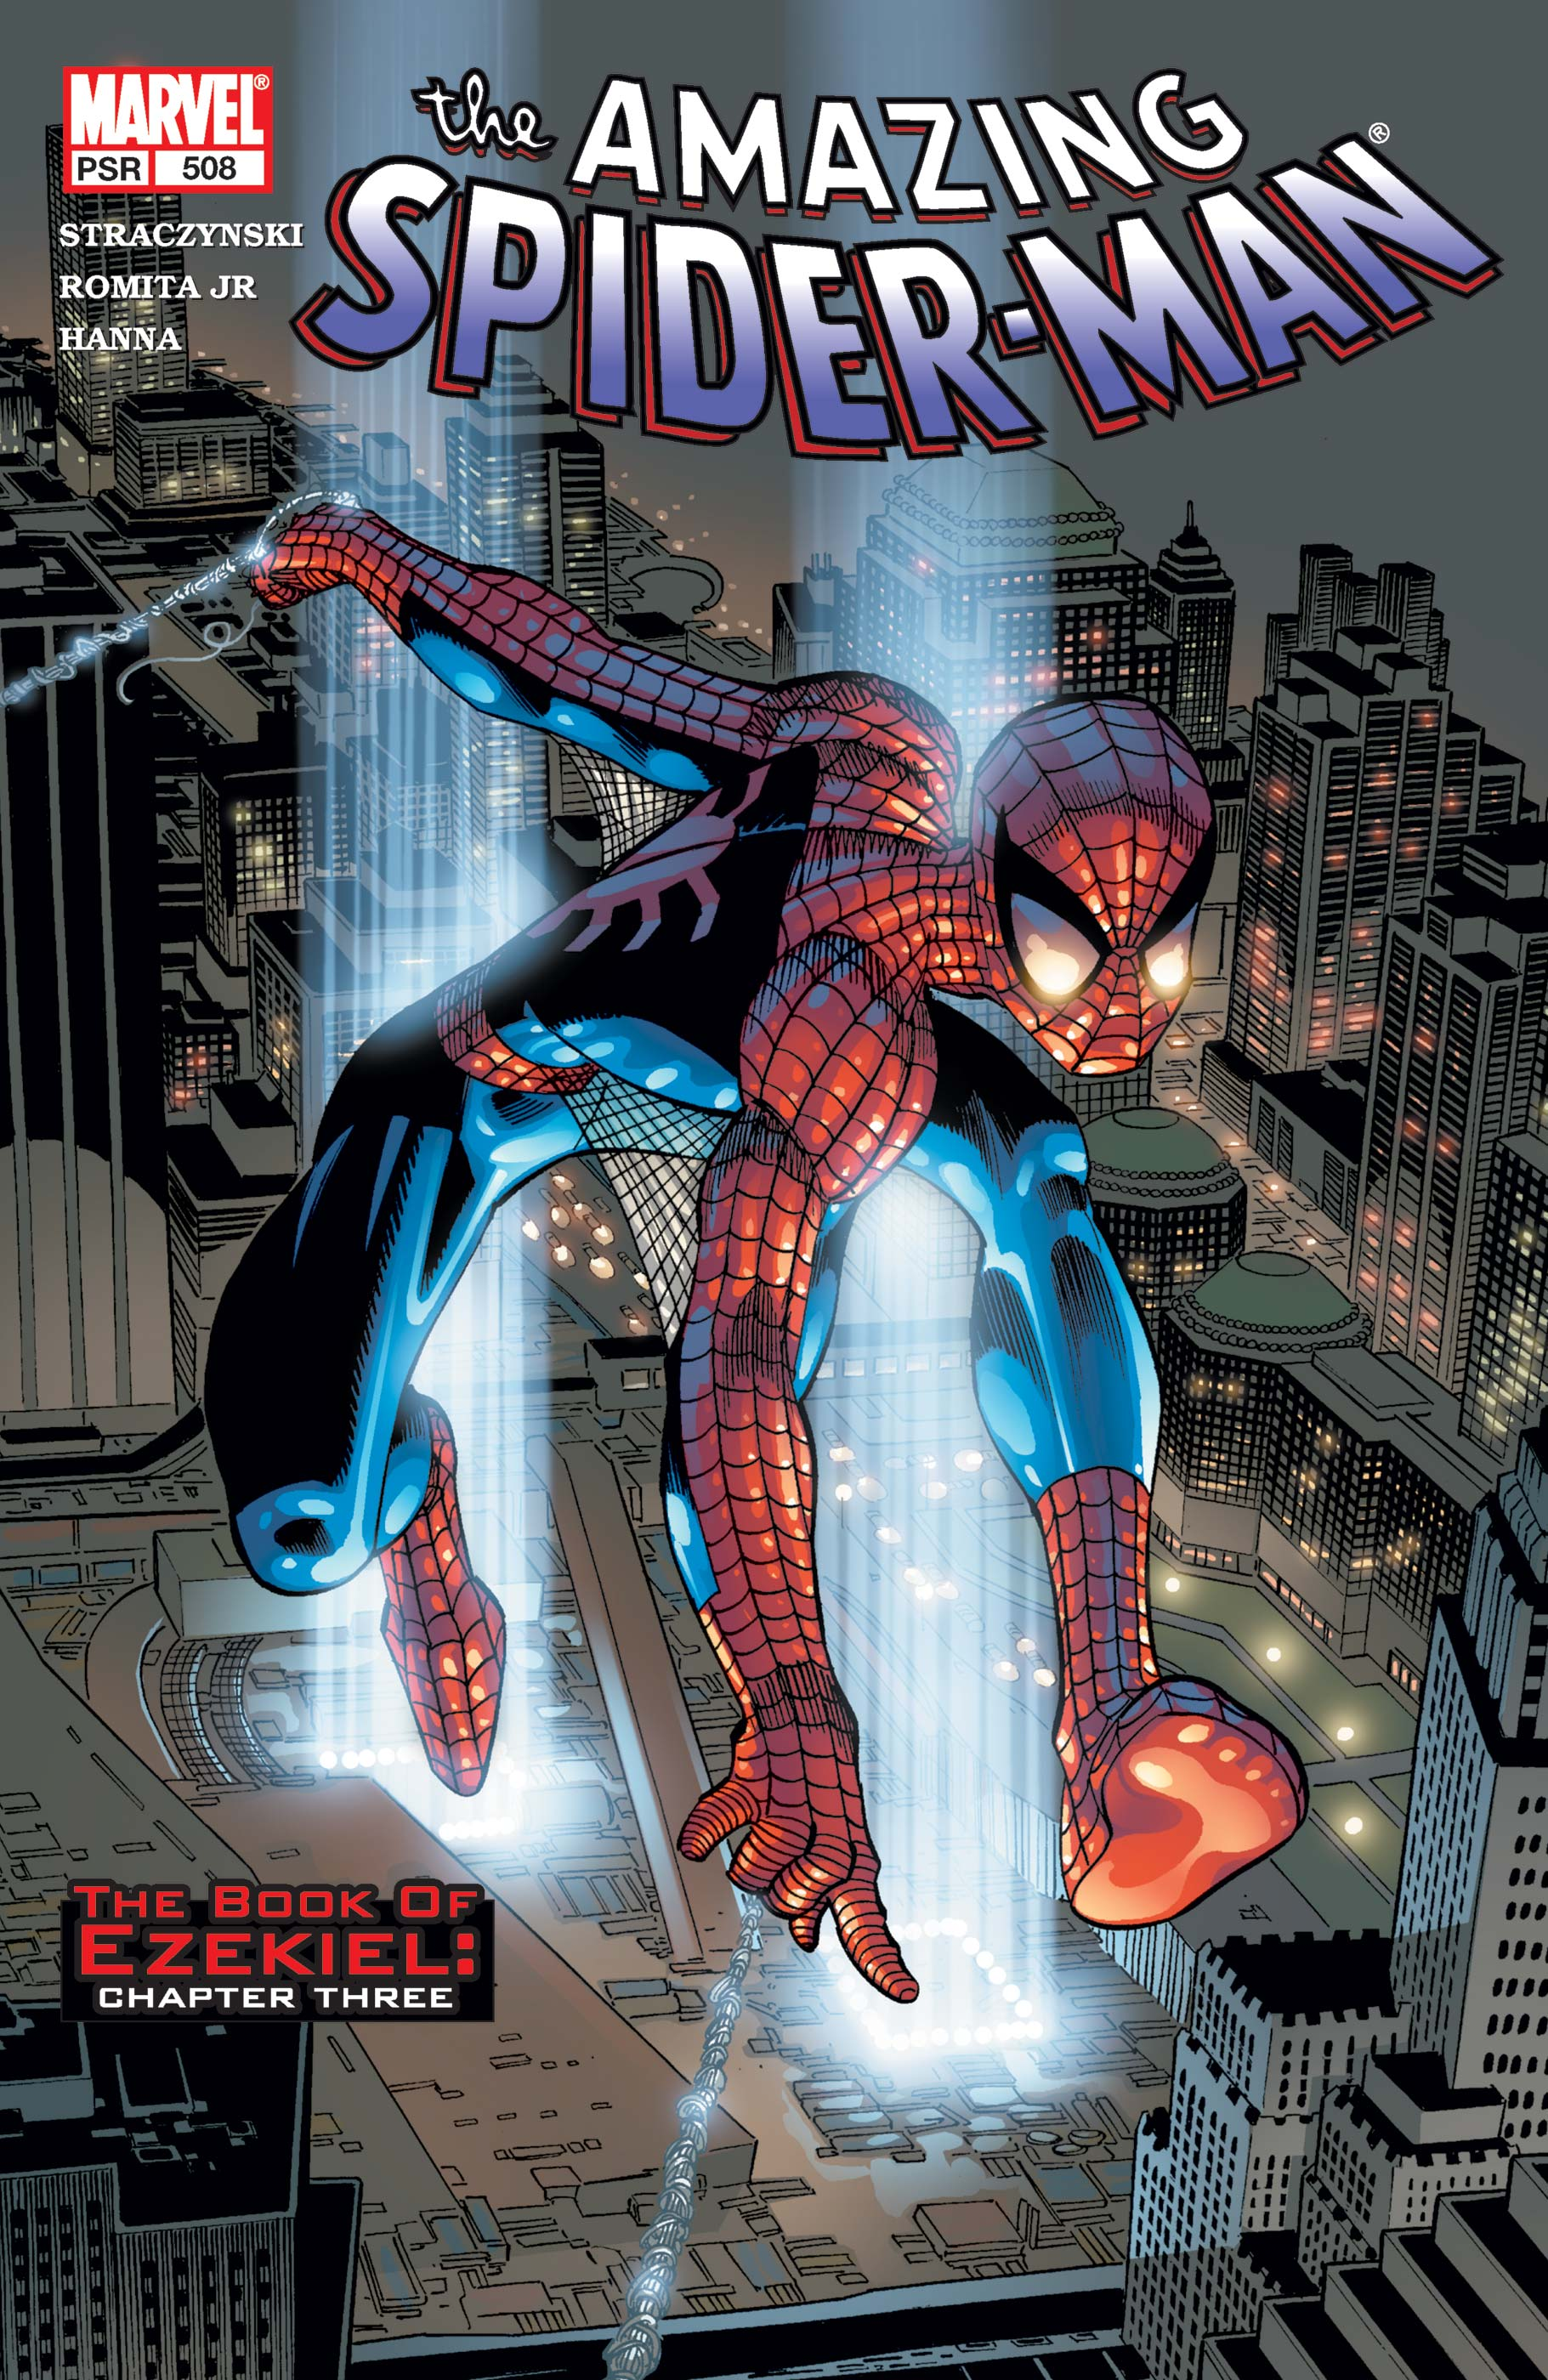 Amazing Spider-Man (1999) #508